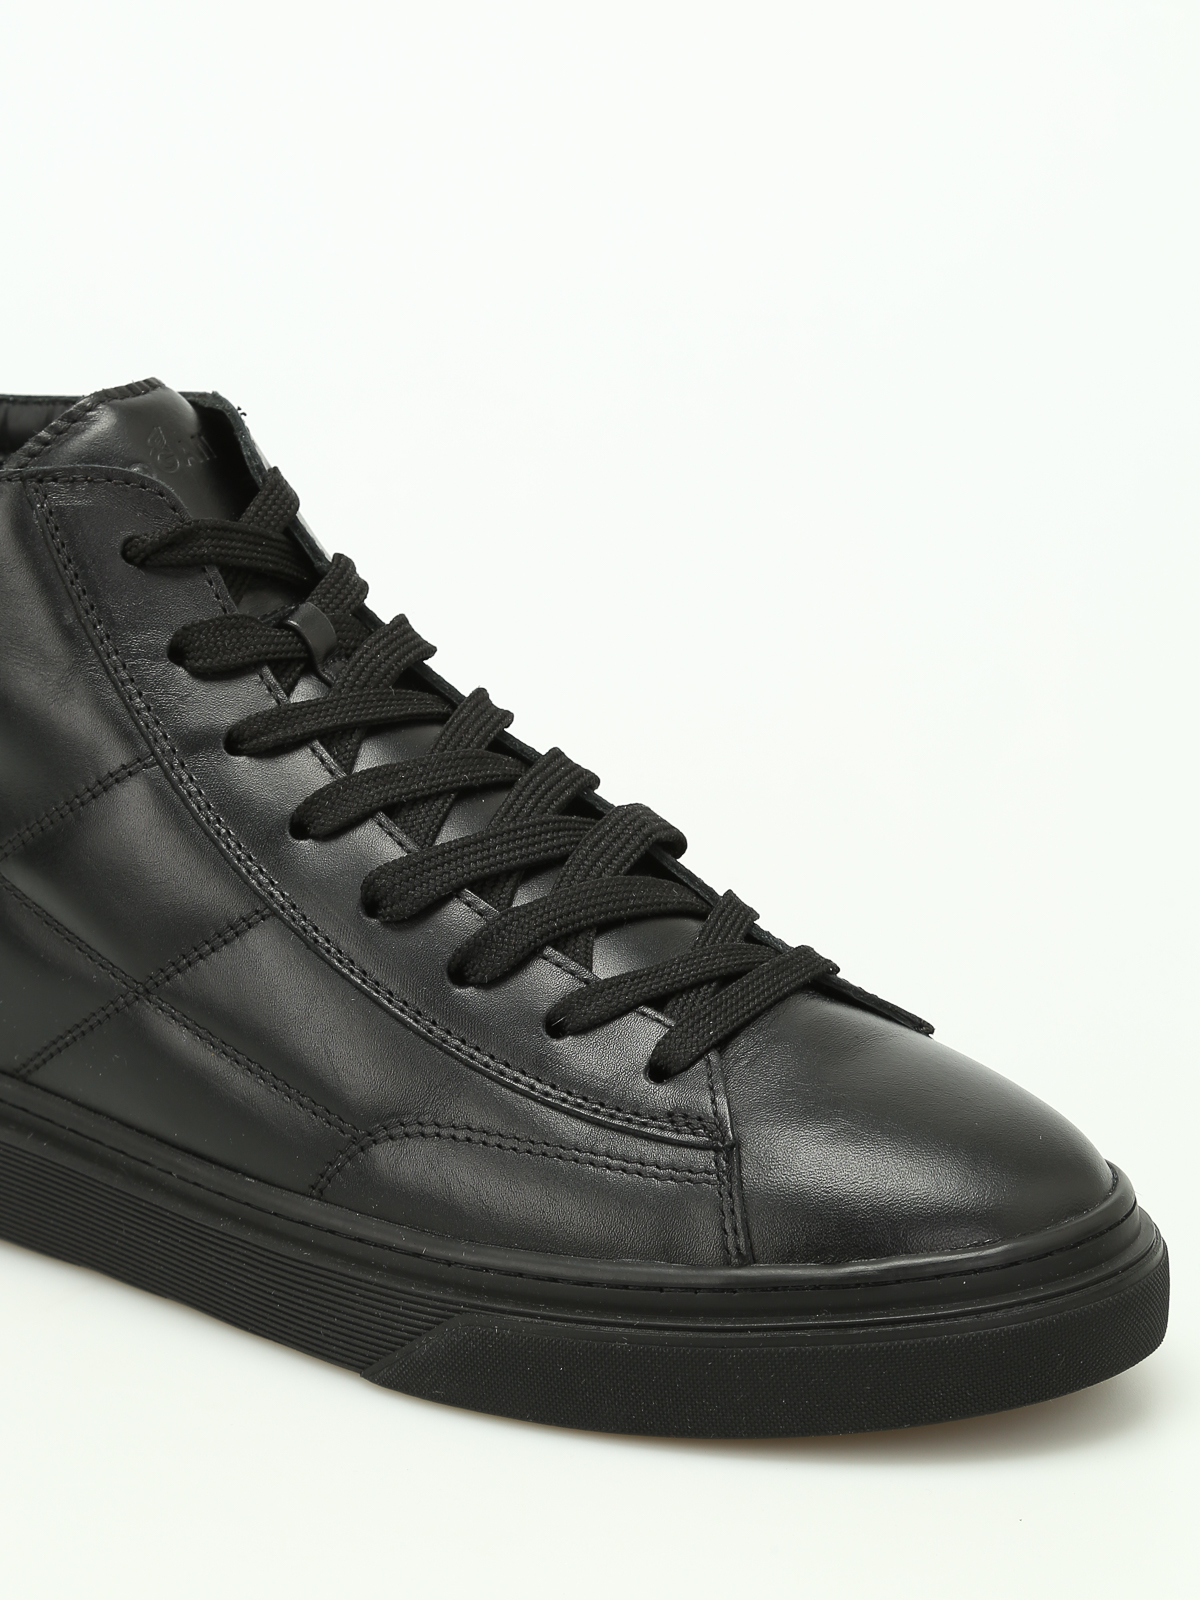 Hogan - H340 high-top leather sneakers - trainers - HXM3400J560HNY0XCR